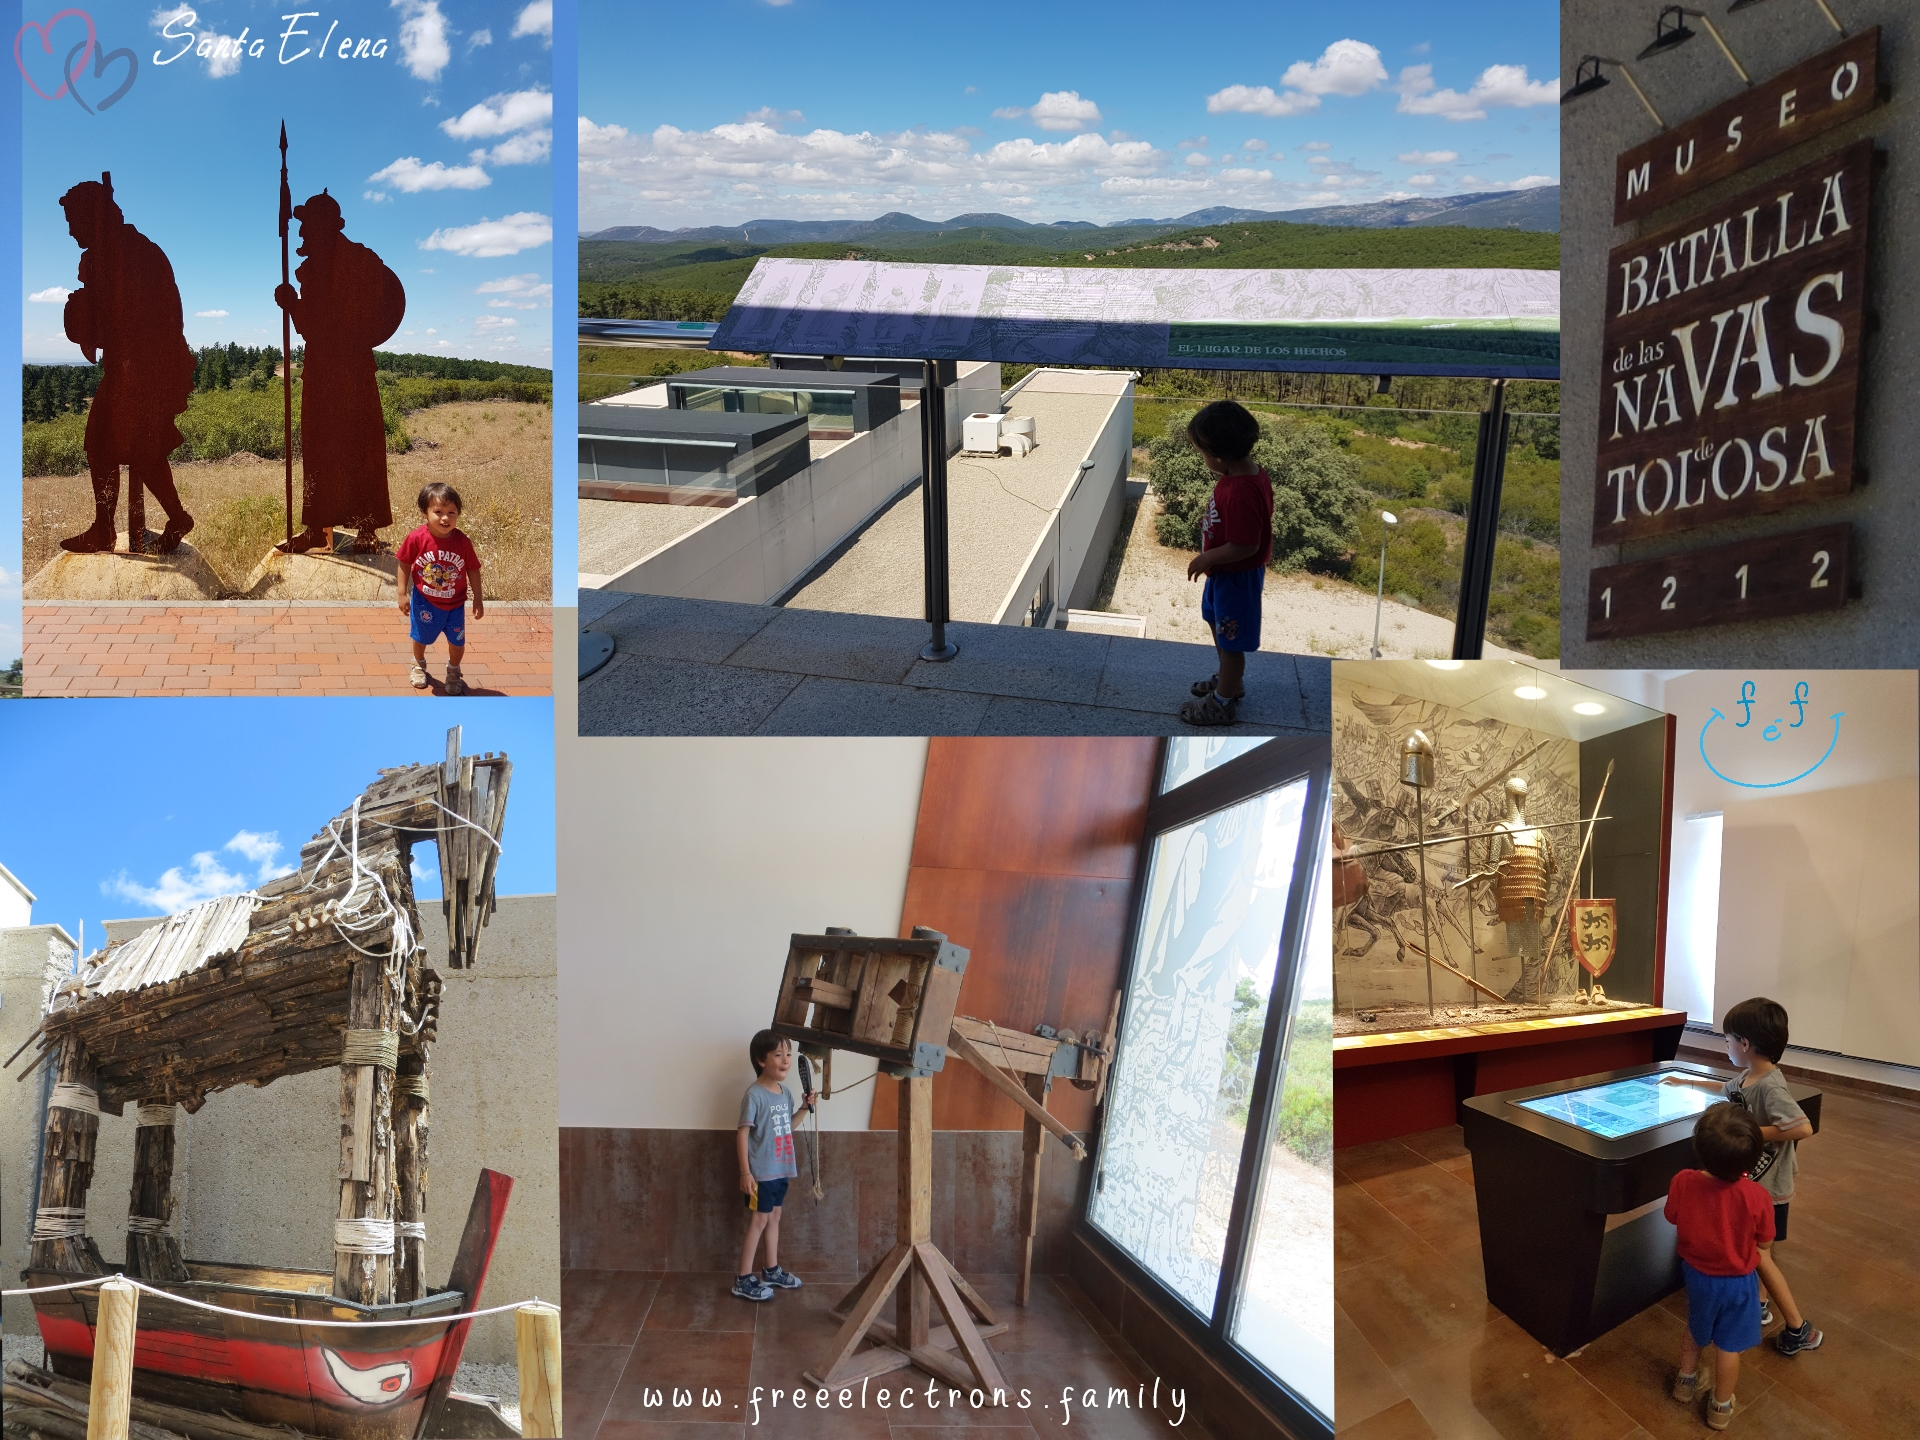 A #FreeElectrons.Family camping road trip Europe I stop in Santa Elena, Jaen, Spain.  Plenty of fun things to do and learn about at the museum of the Battle of the Navas Tolosa.